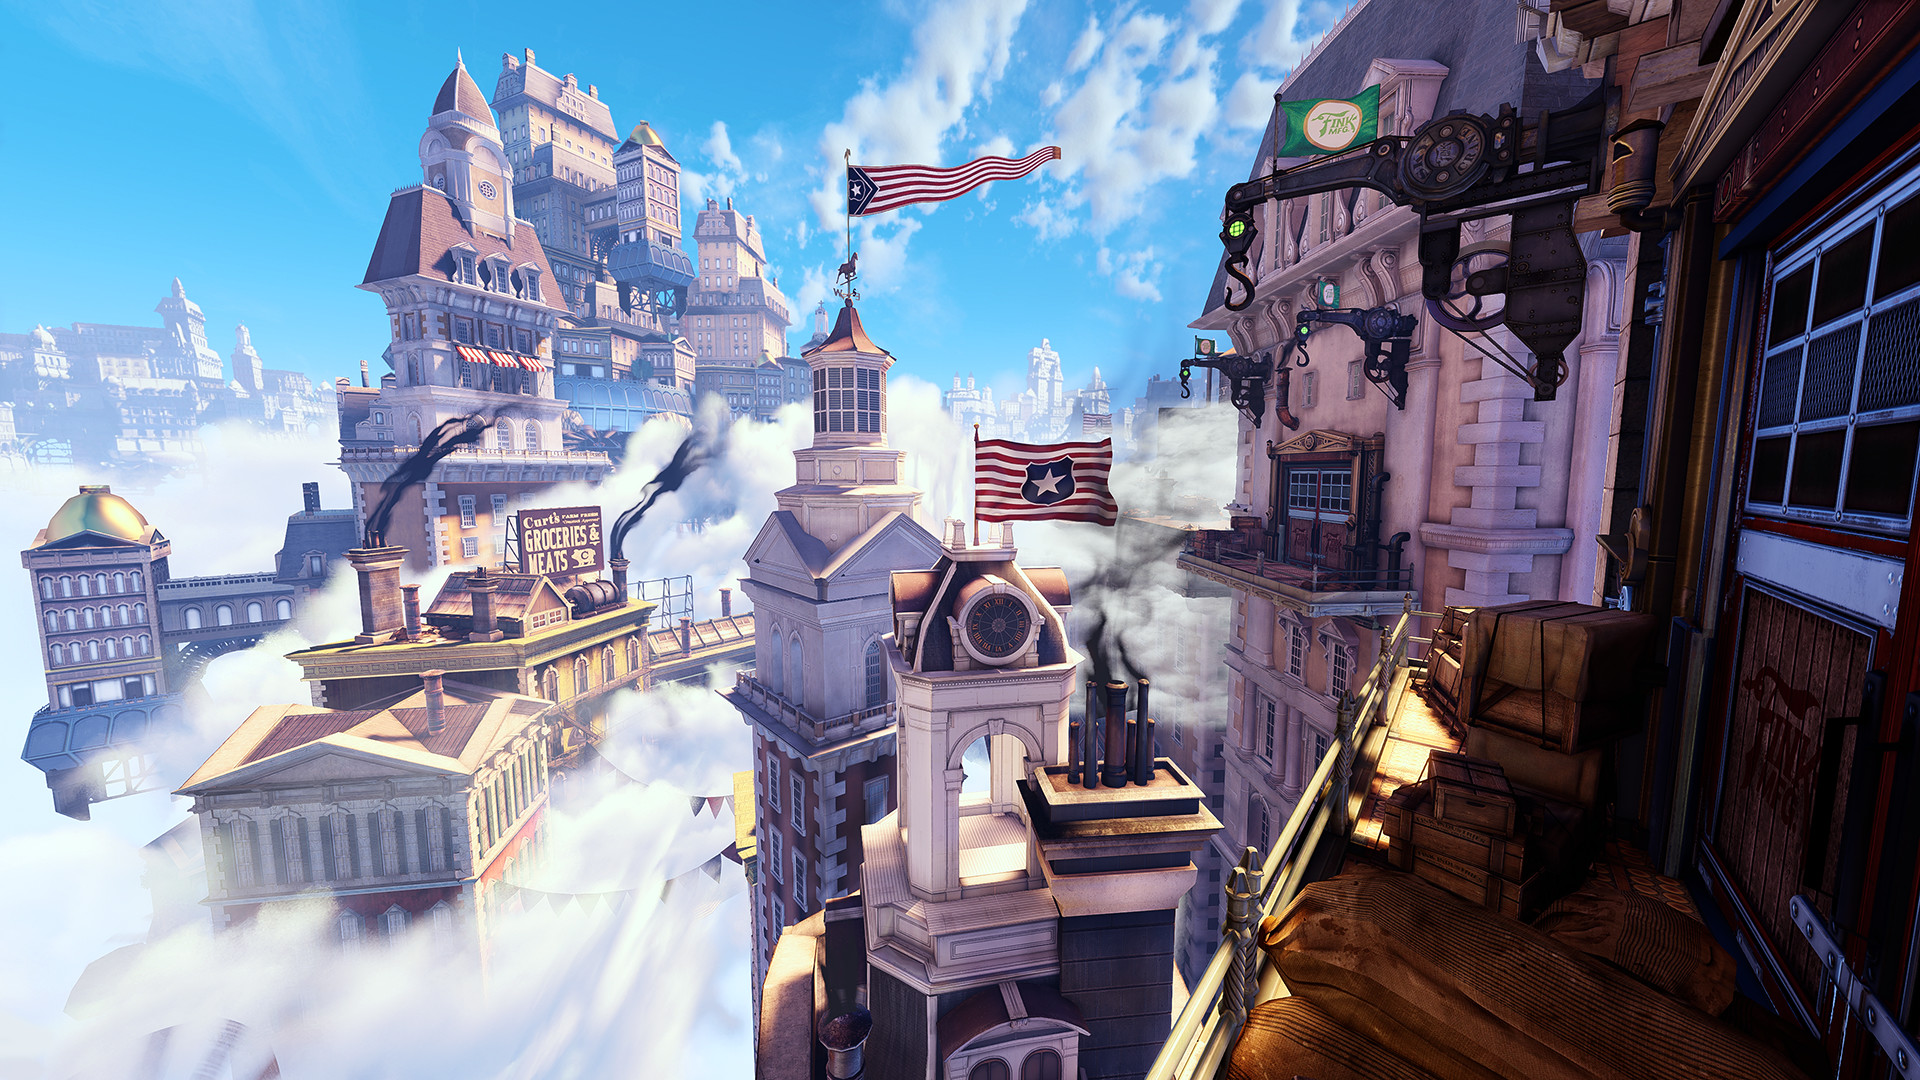 Bioshock Infinite Wallpaper Hd Bioshock Infinite Columbia Wallpaper 81 Images